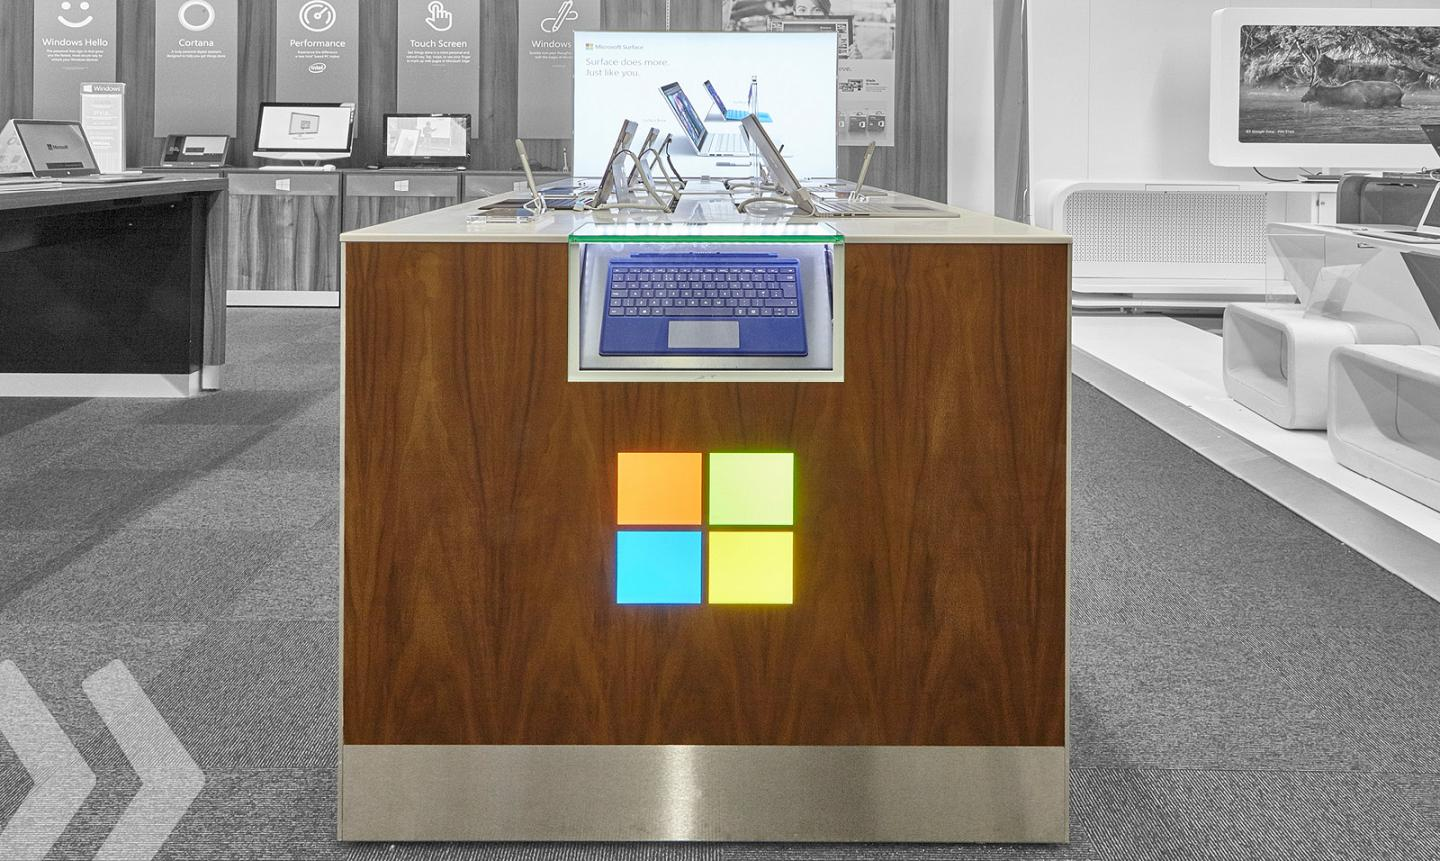 Microsoft Display- made by ARNO 05